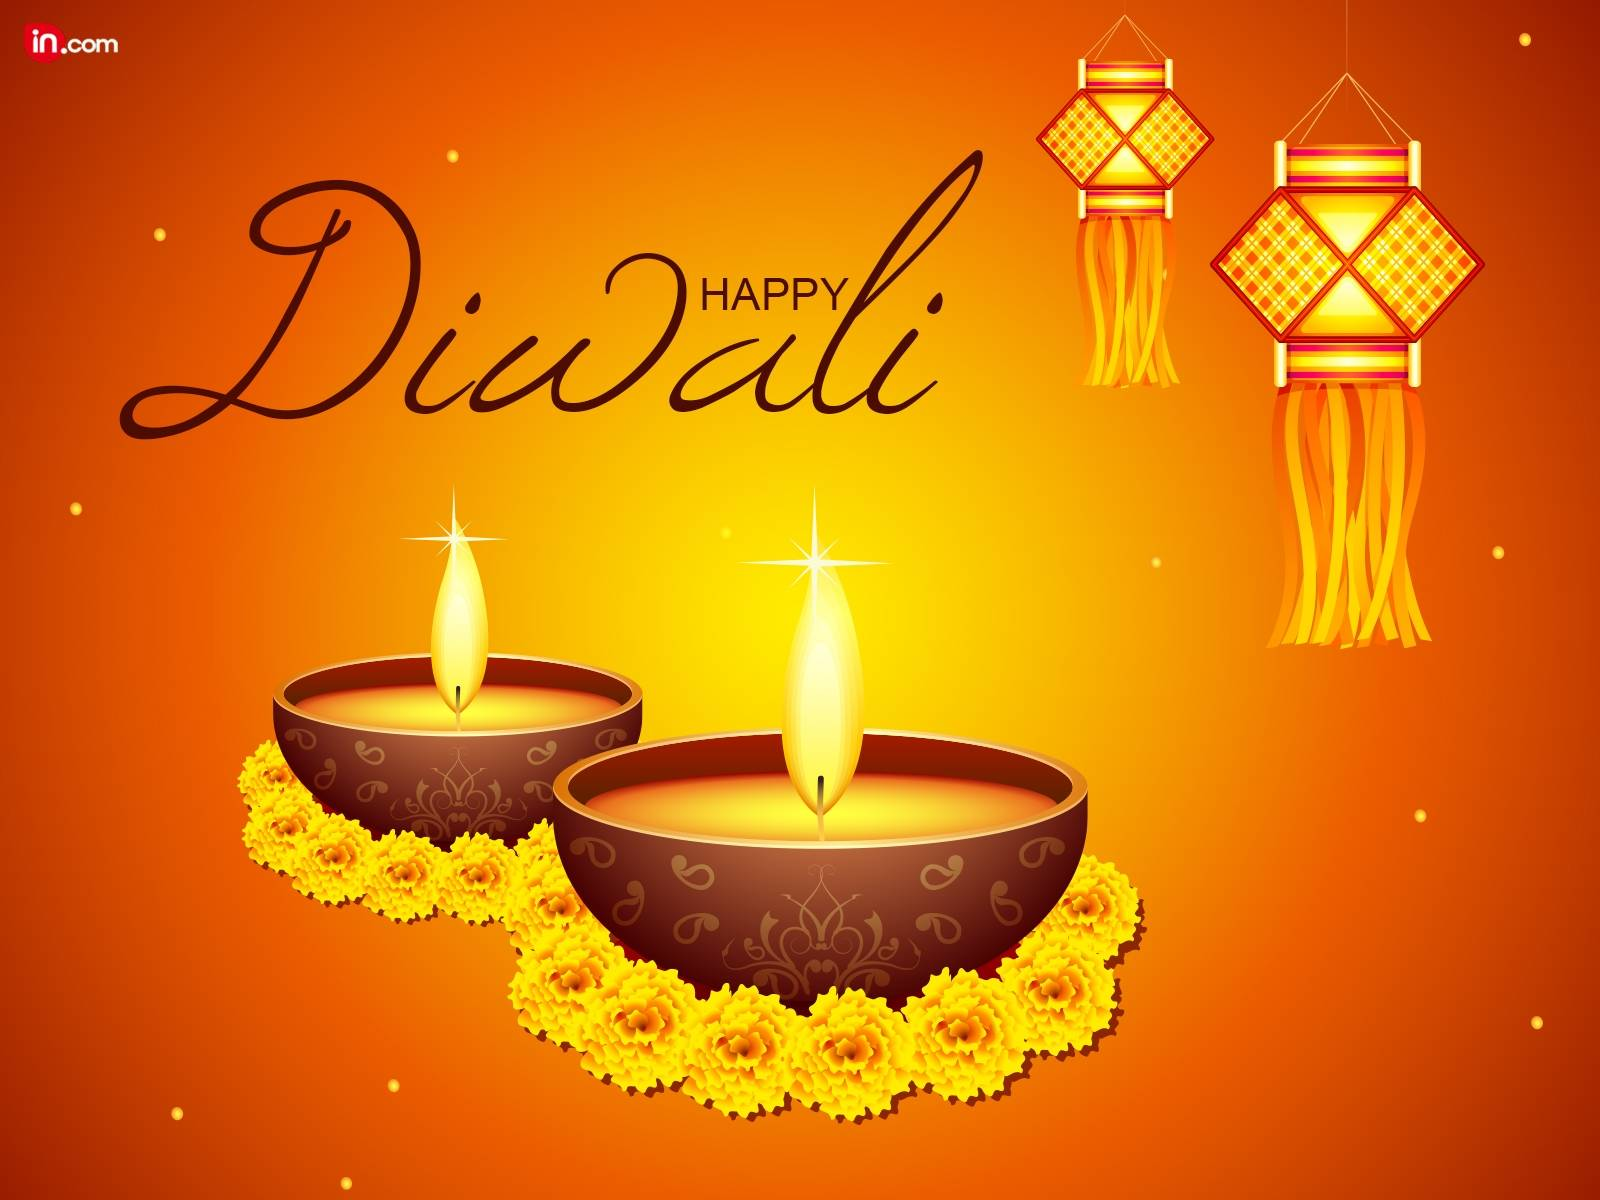 essay for diwali for kids Contextual translation of essay diwali for kid into tamil human translations with examples: கட்டுரை தீபாவளி, lotus flower essay, thuimai india essay.